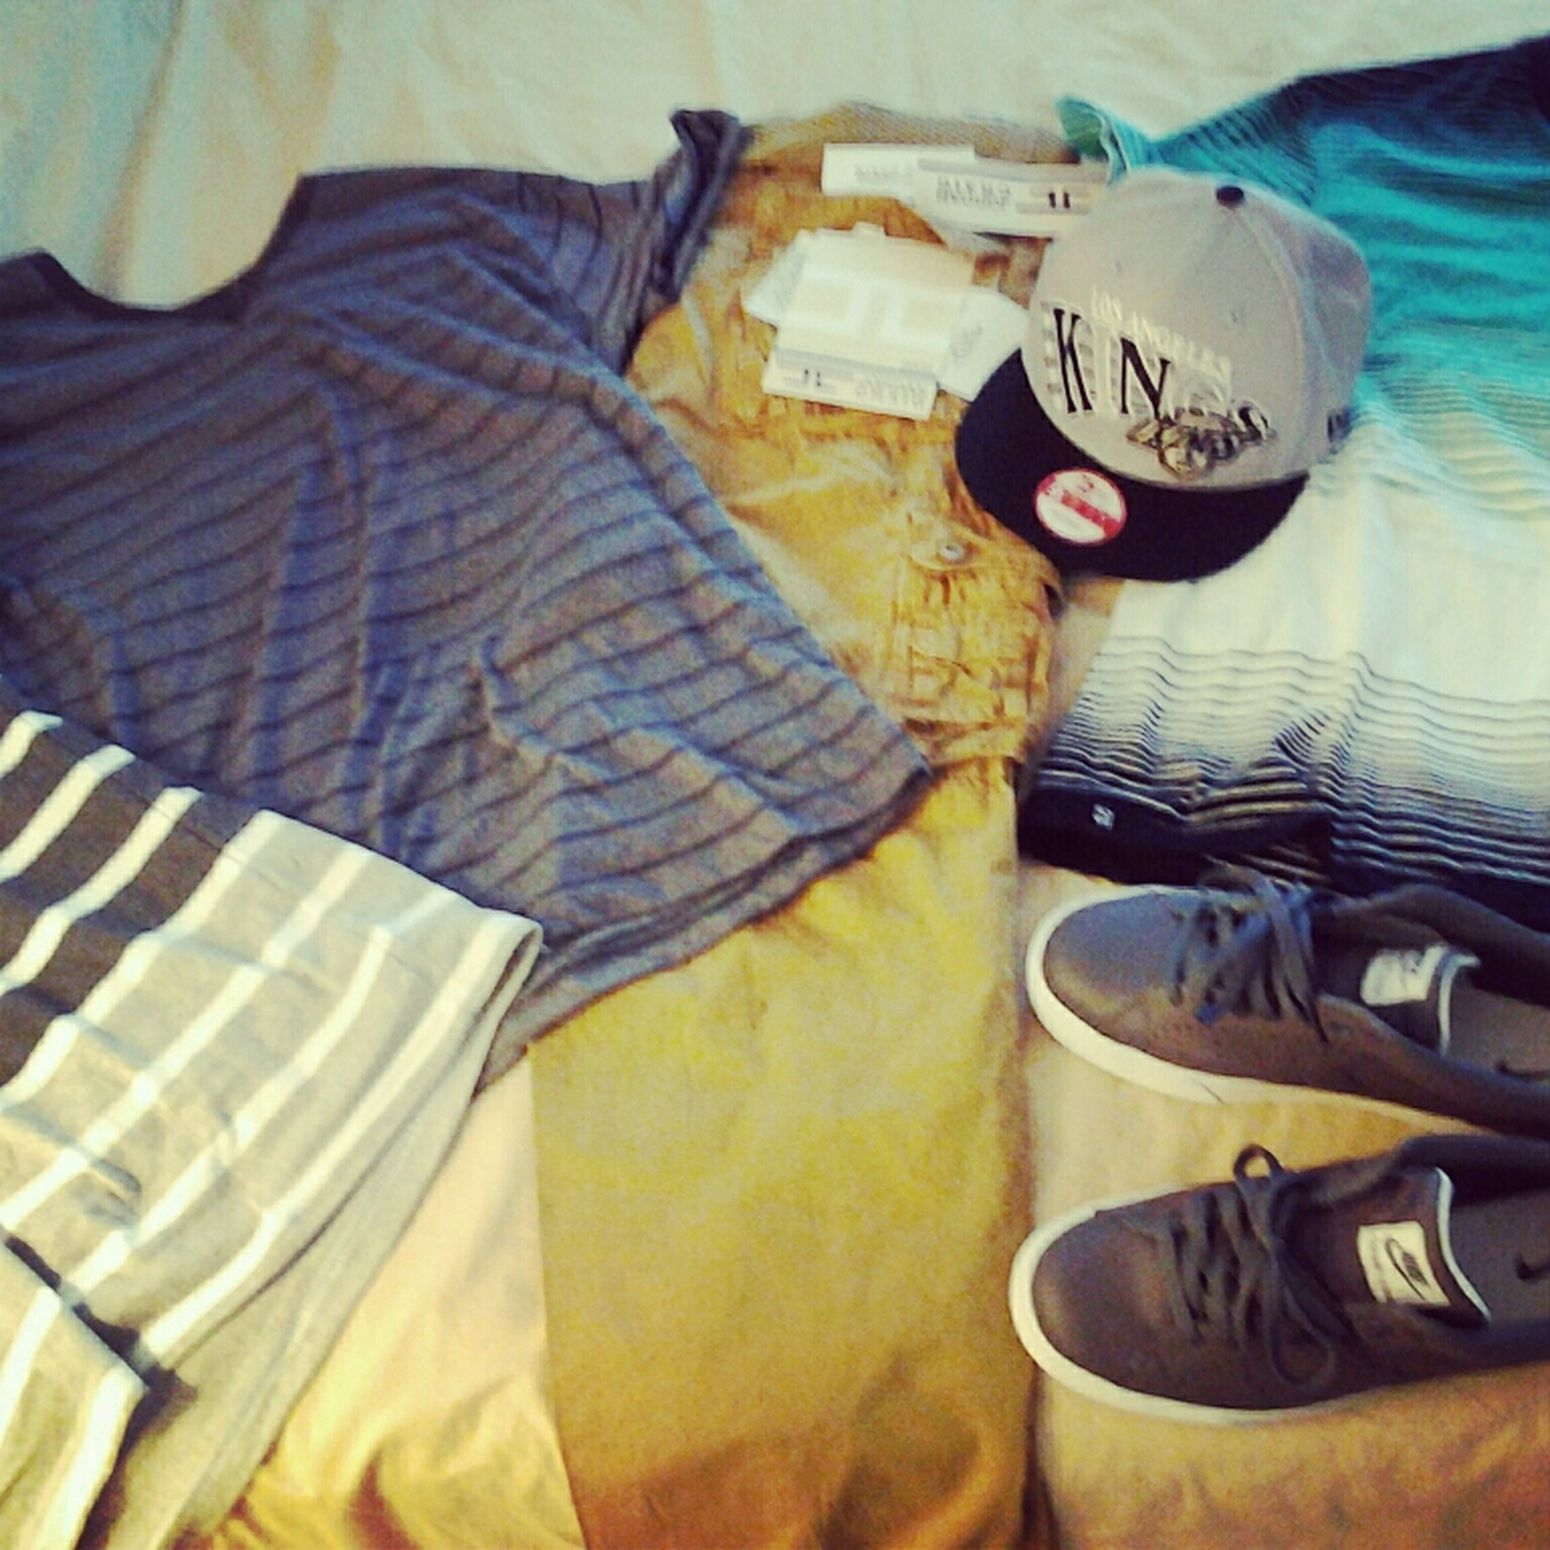 new gear i coped from the mall yesterday thoee lol